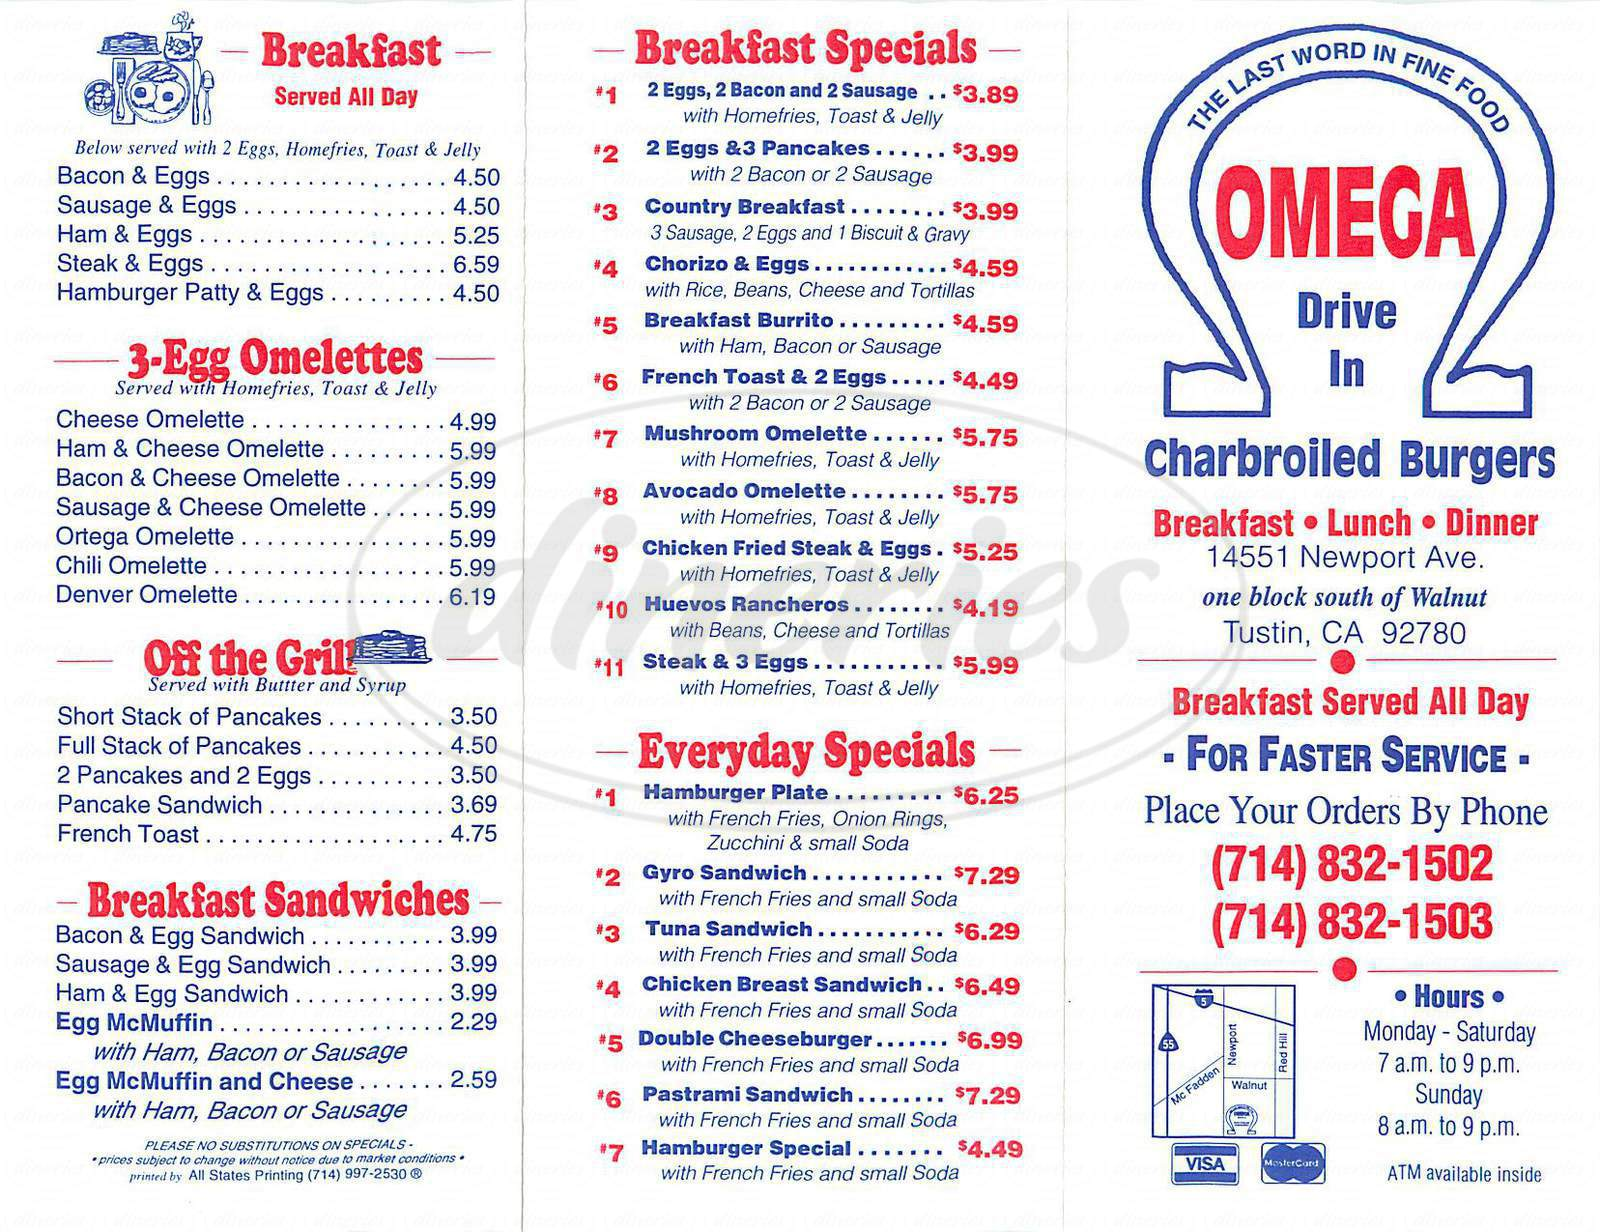 menu for Omega Drive In